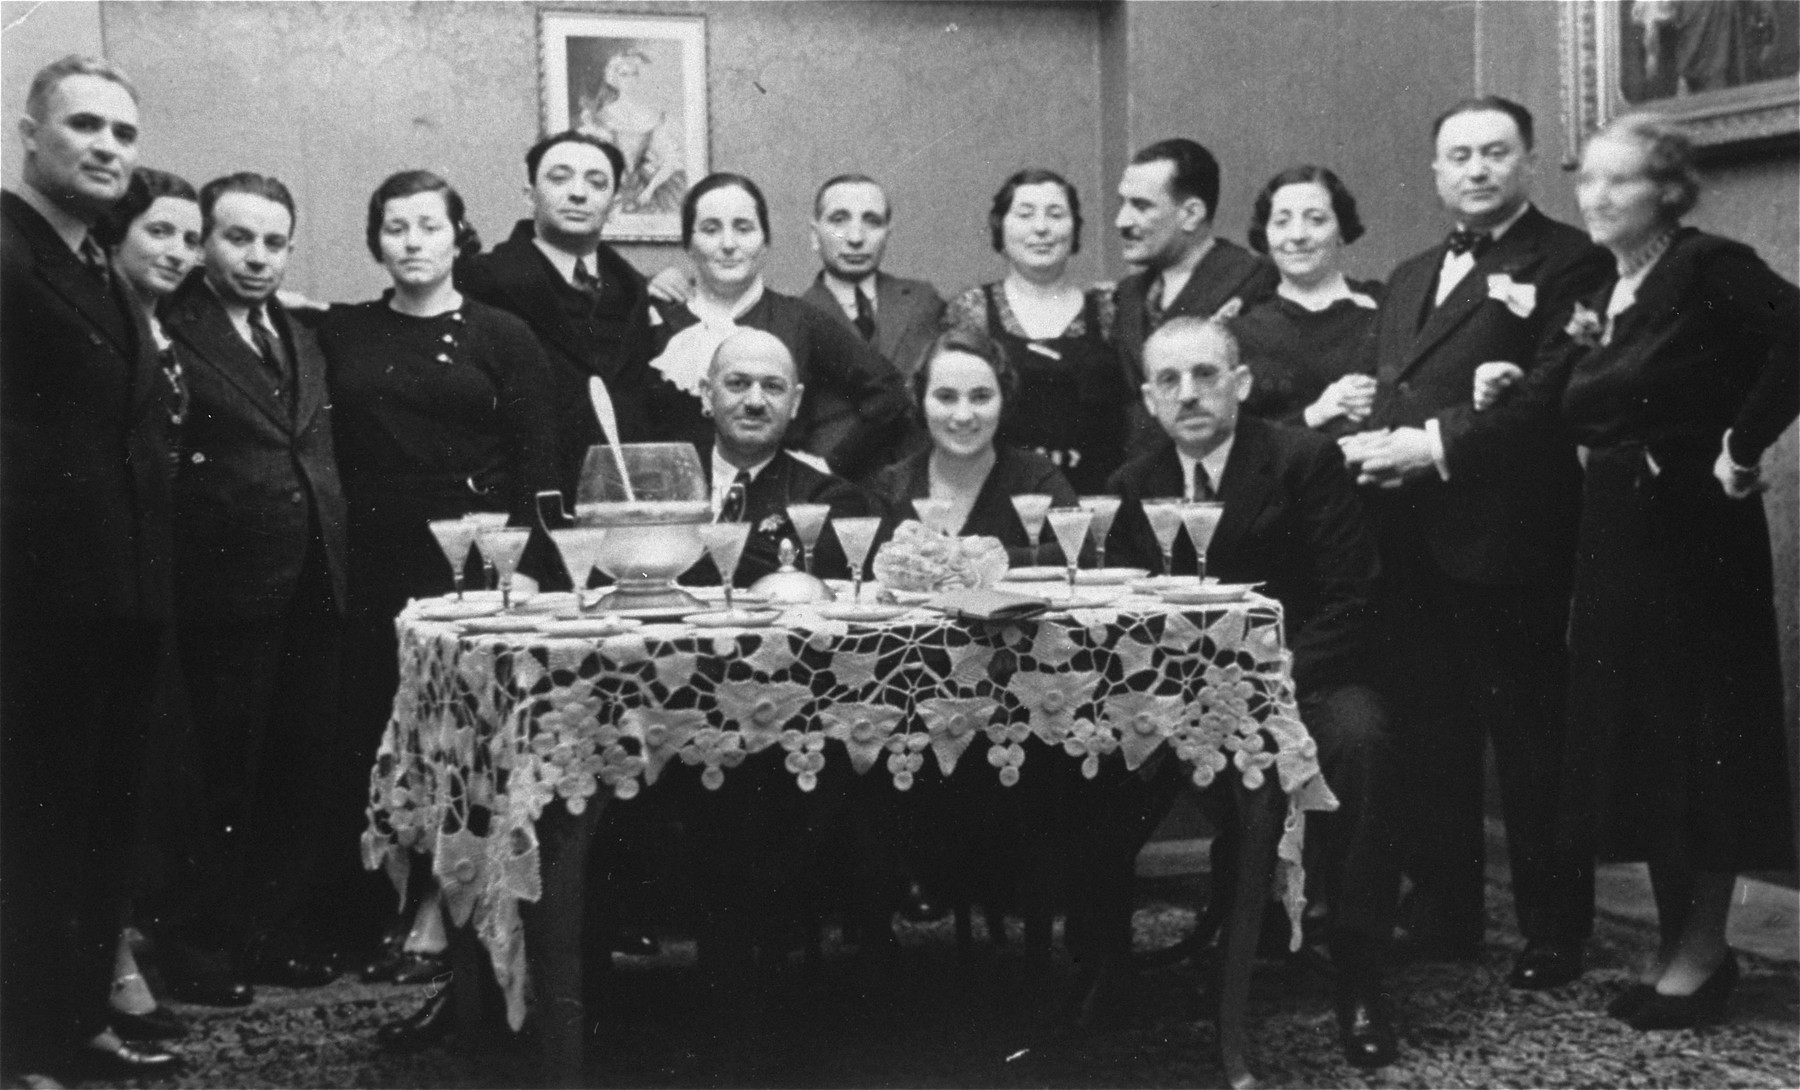 Group portrait of prominent Jewish lawyers and businessmen at a reception at the Yasharoff residence in Sofia.